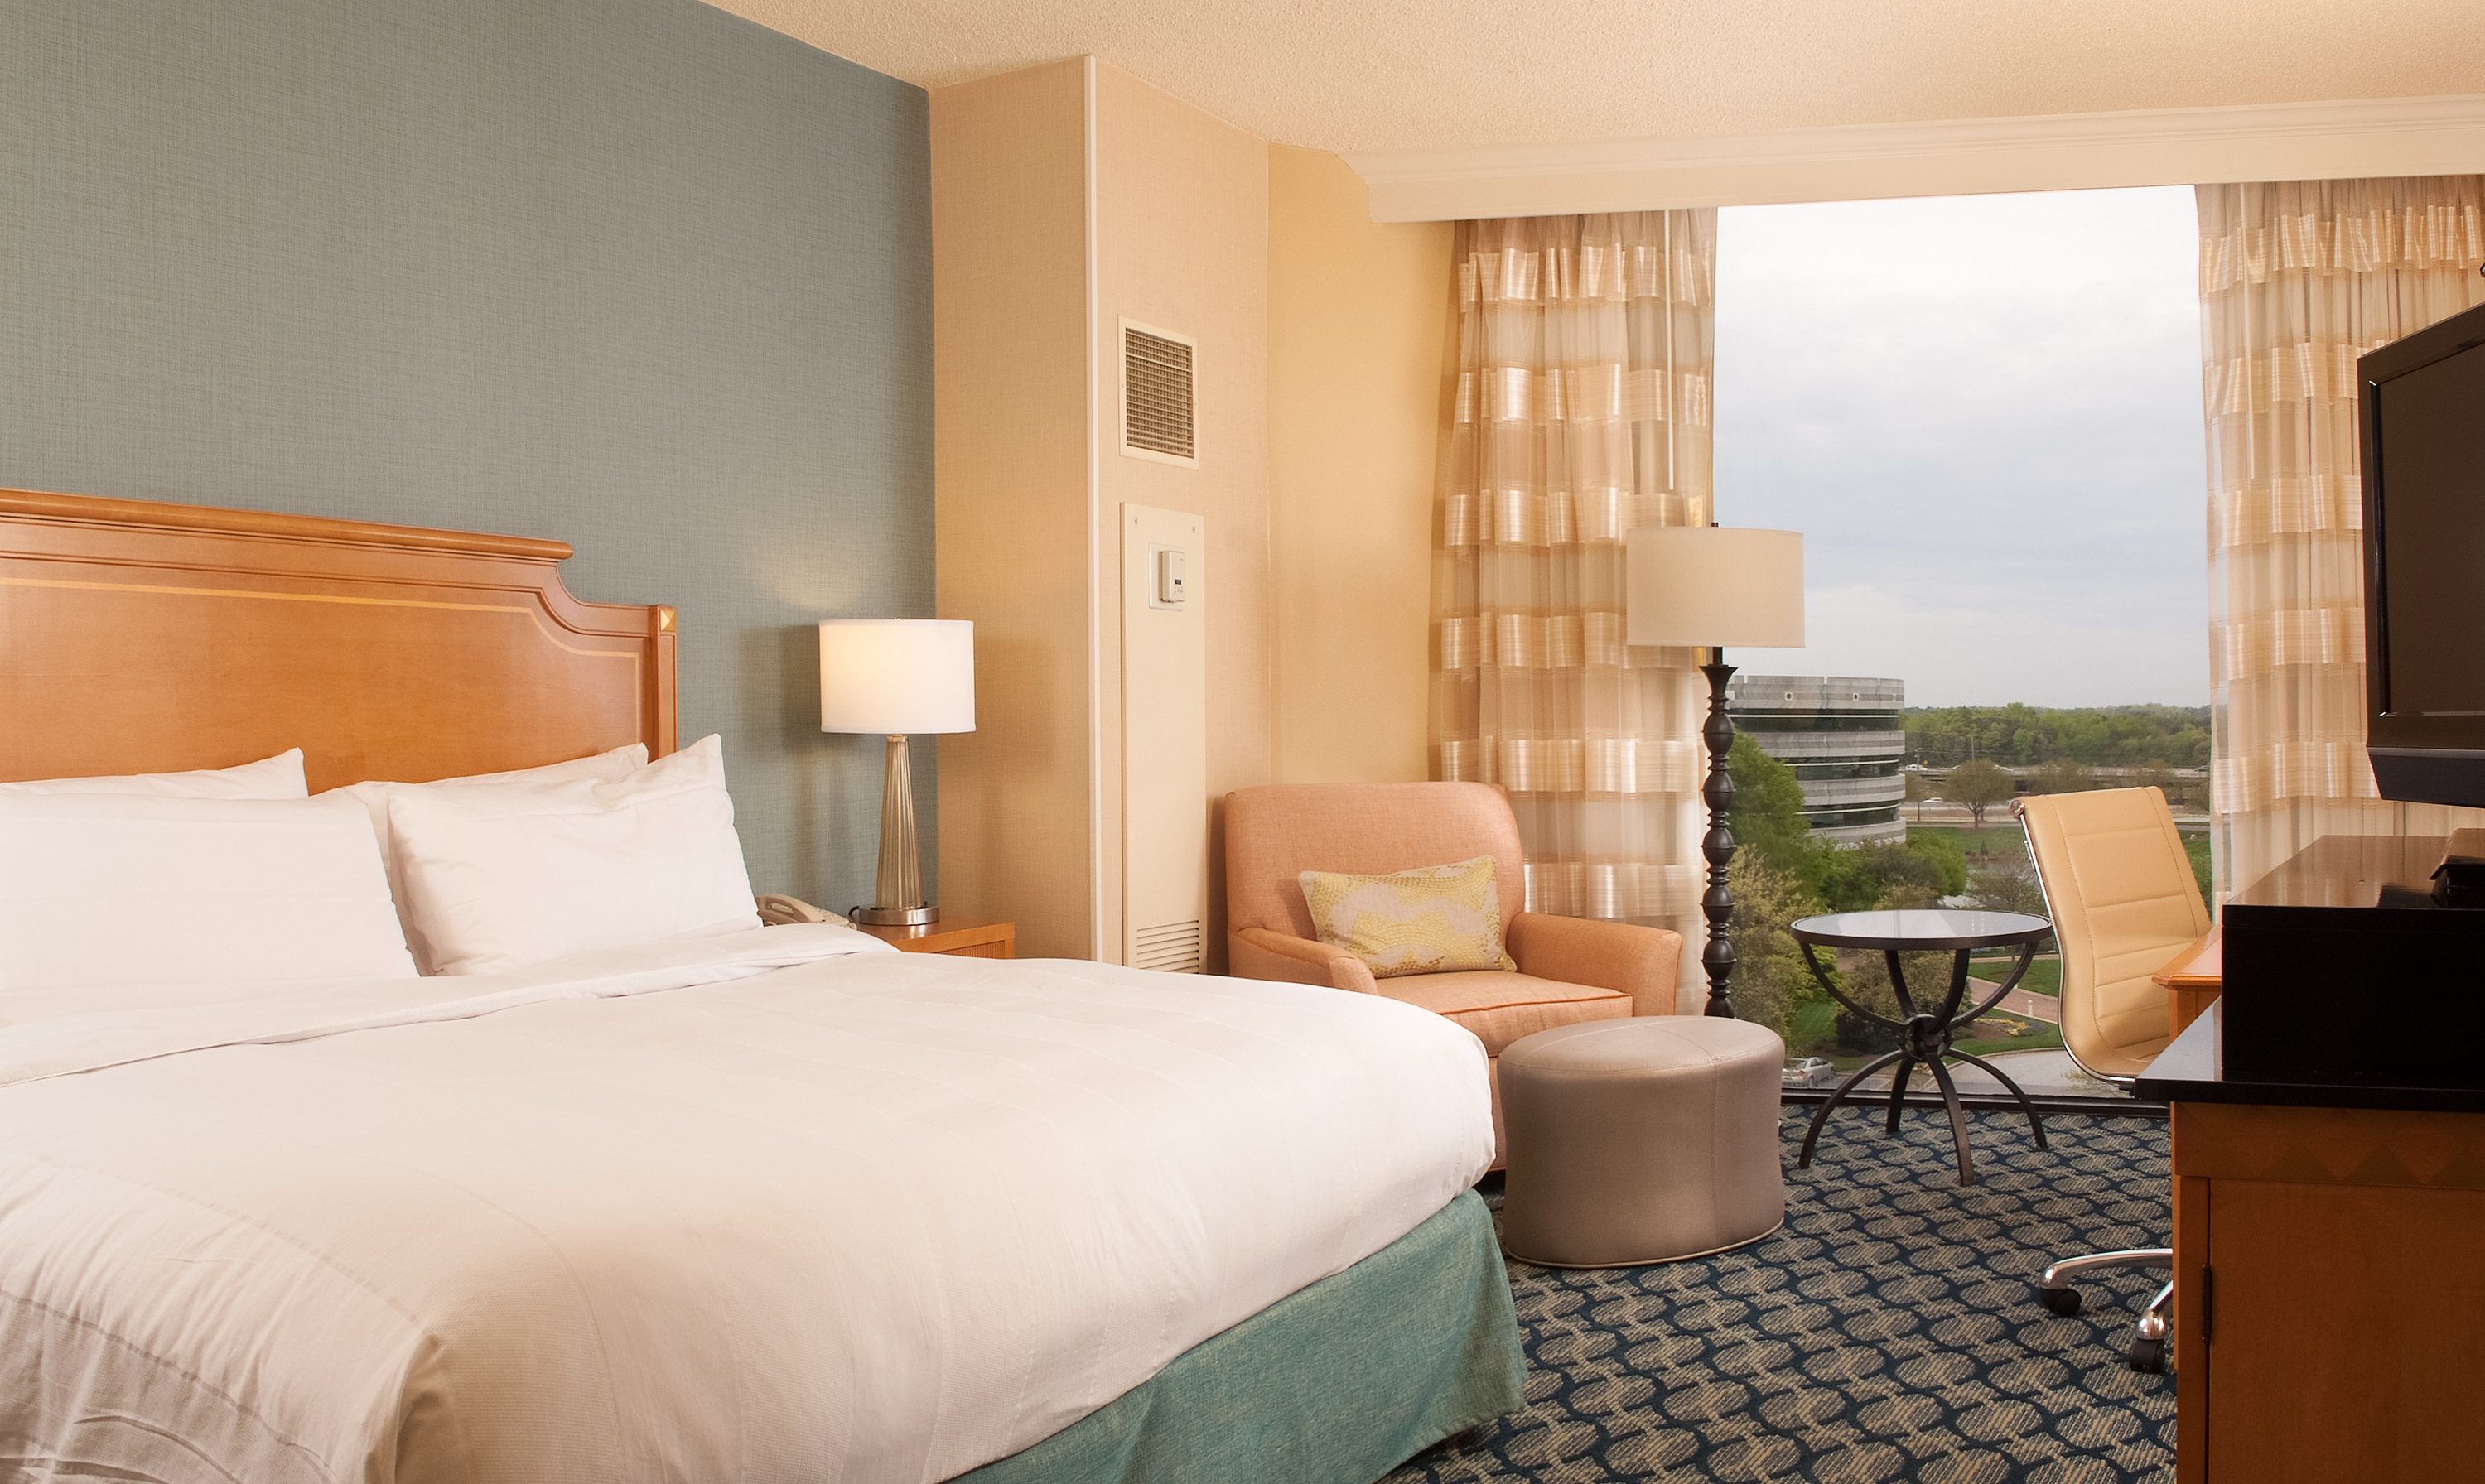 Greenville marriott refresh is complete innovative new for Painting with a twist greenville sc